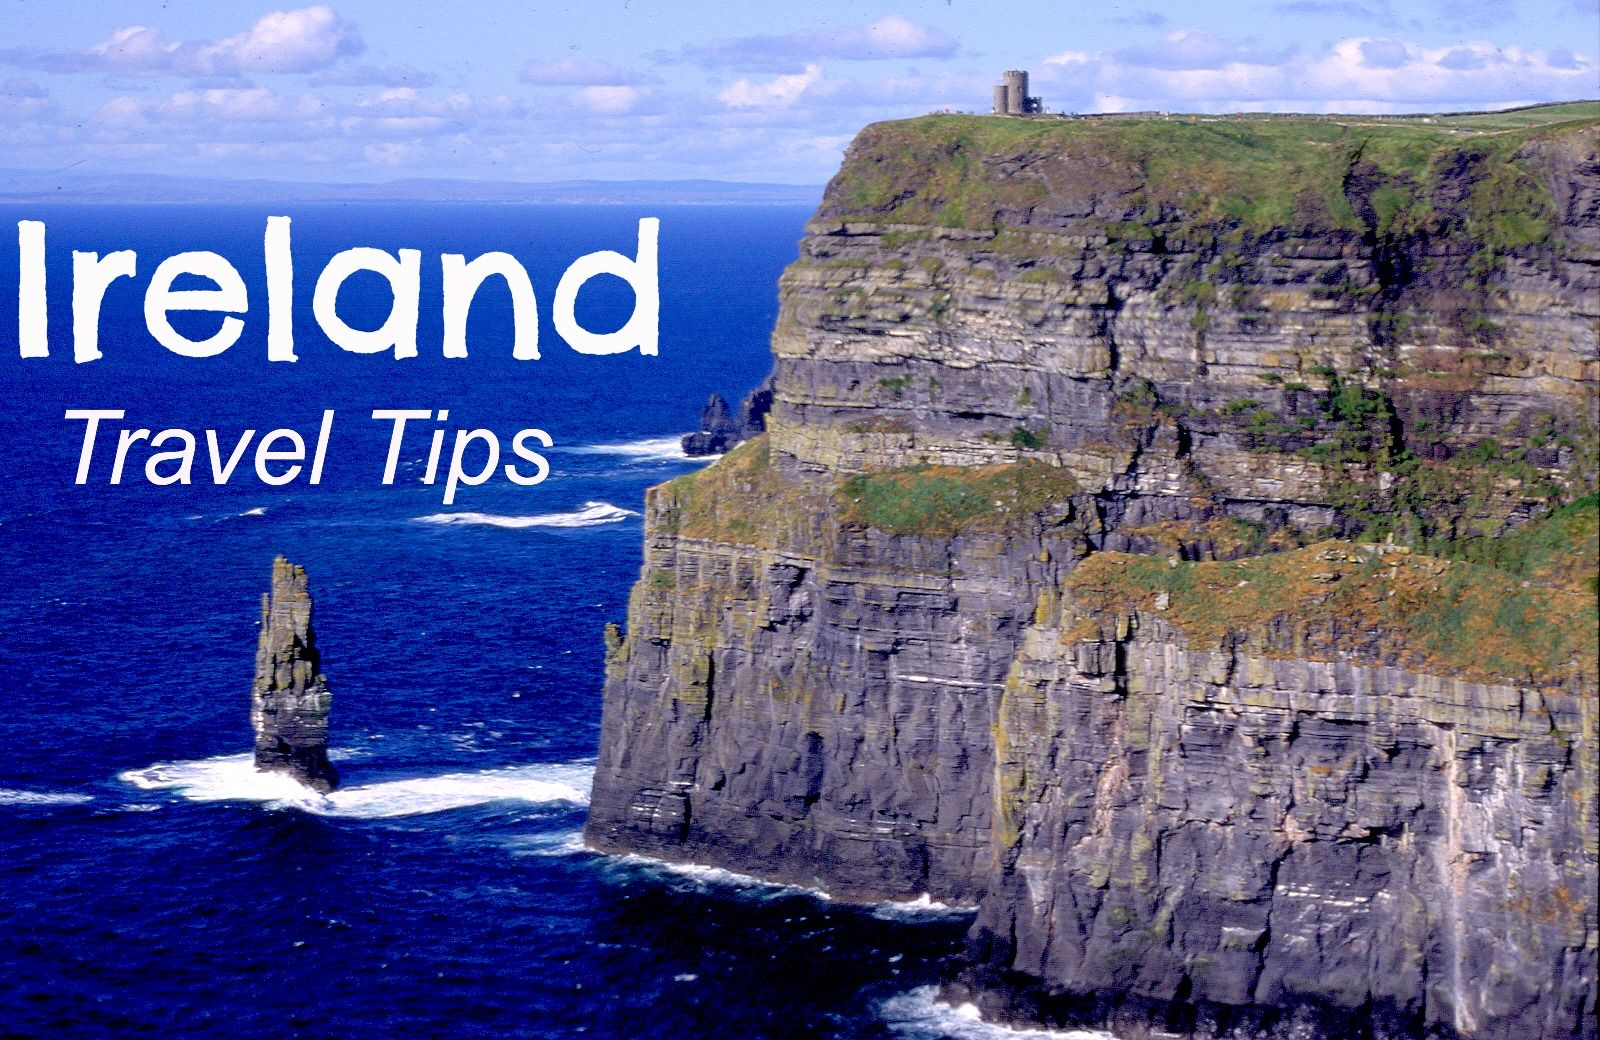 Insider Ireland Travel Tips - Things to See & Do | Those ...